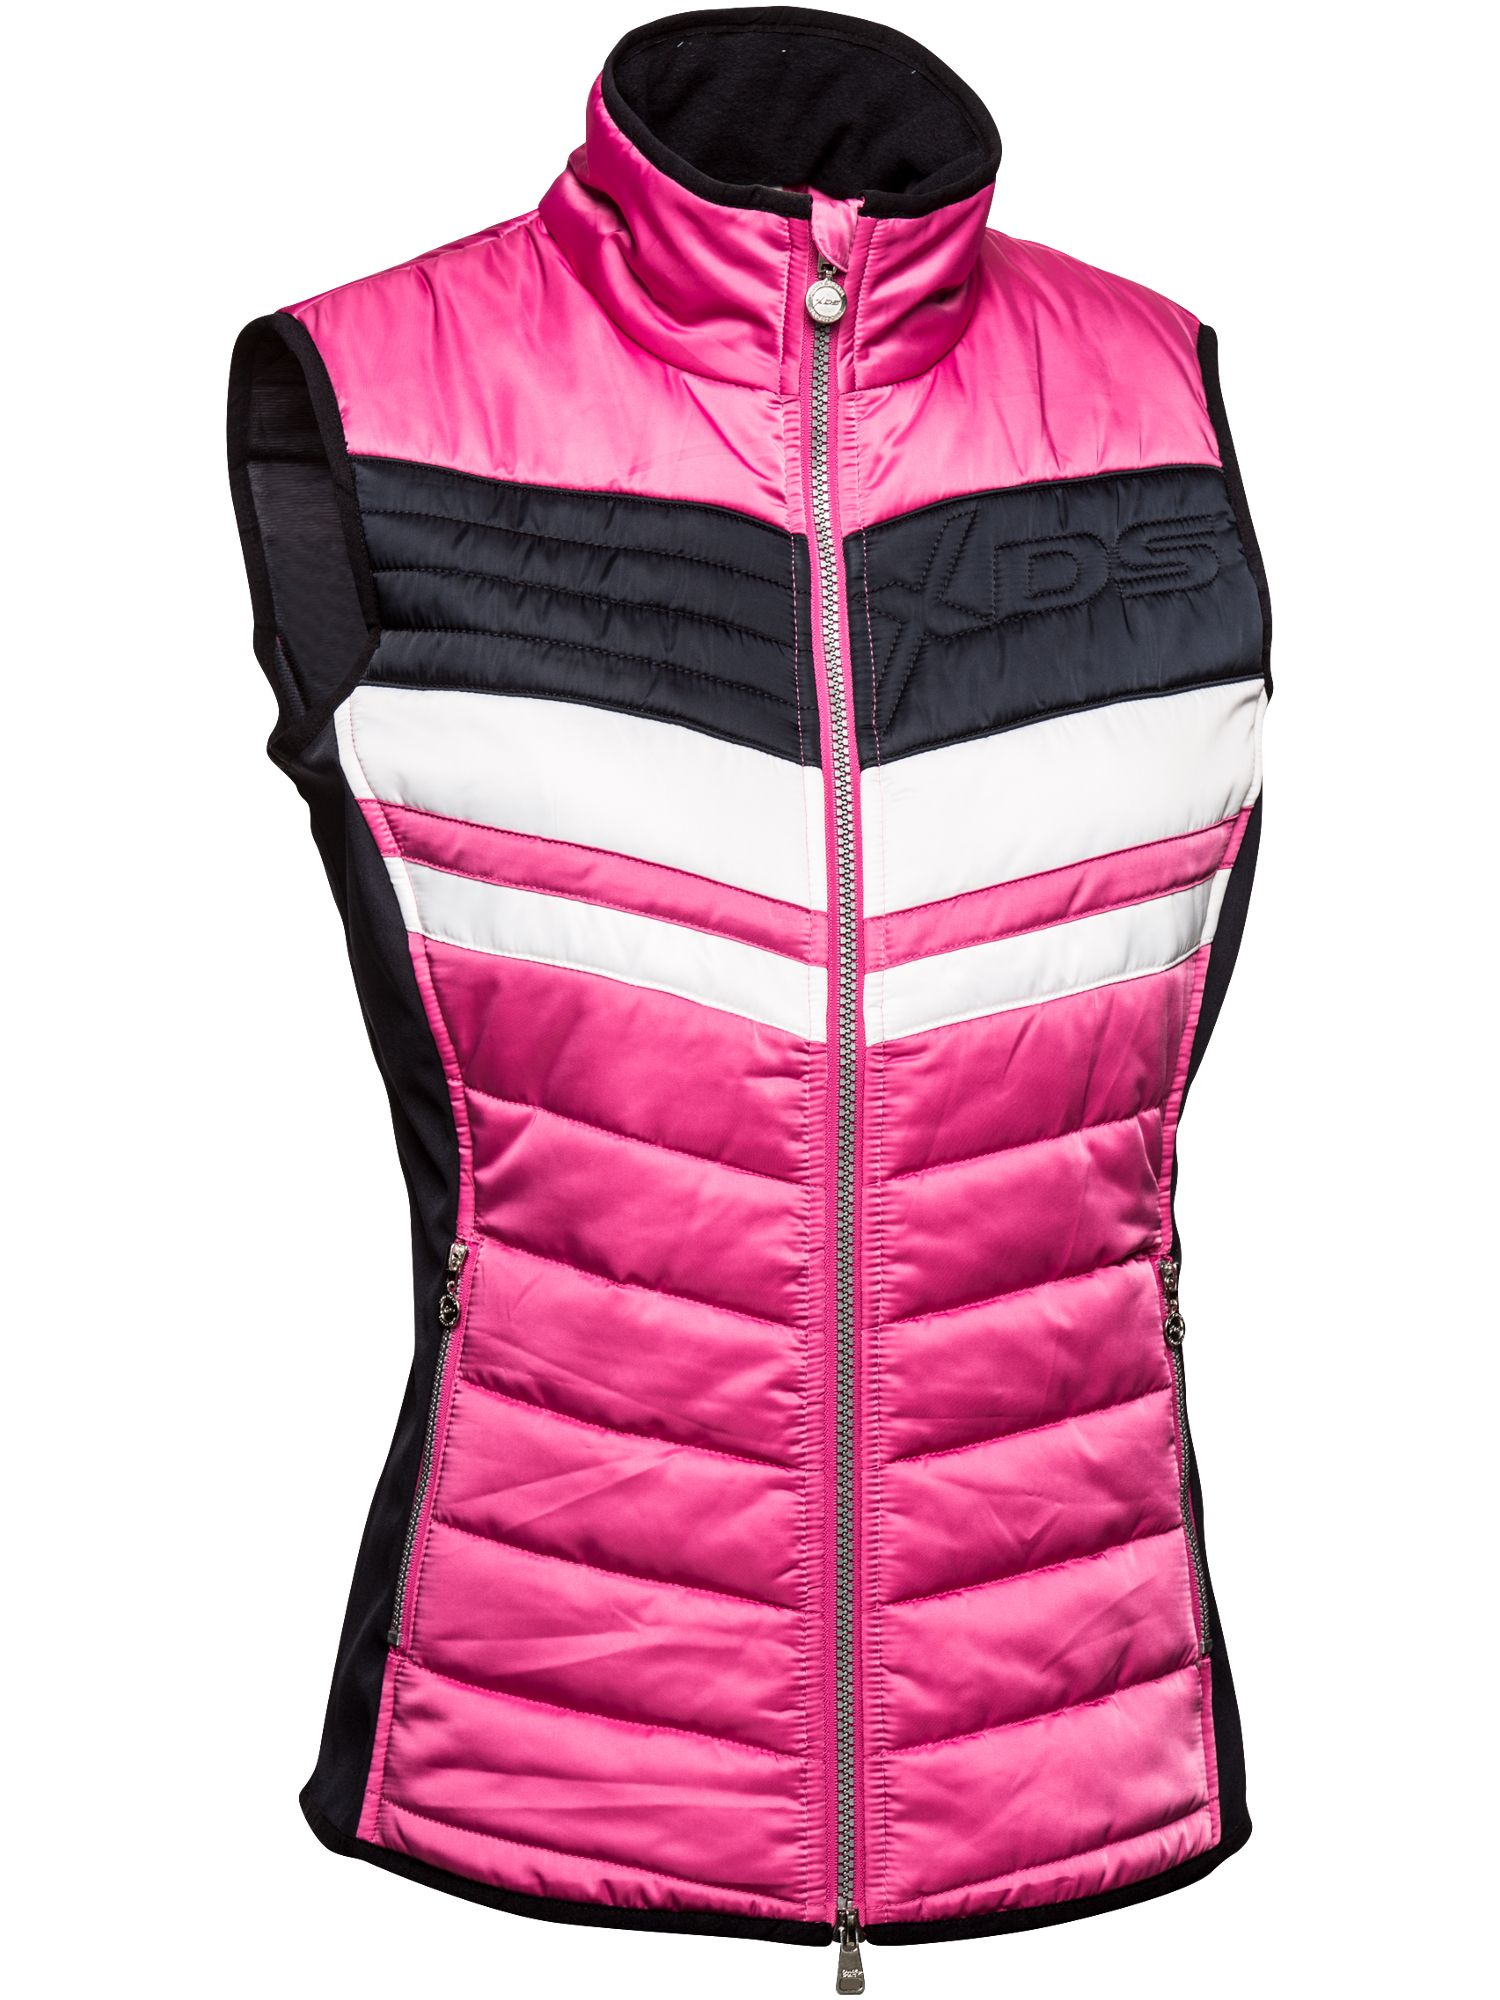 Daily Sports Daily Sports Alberta wind vest, Pink